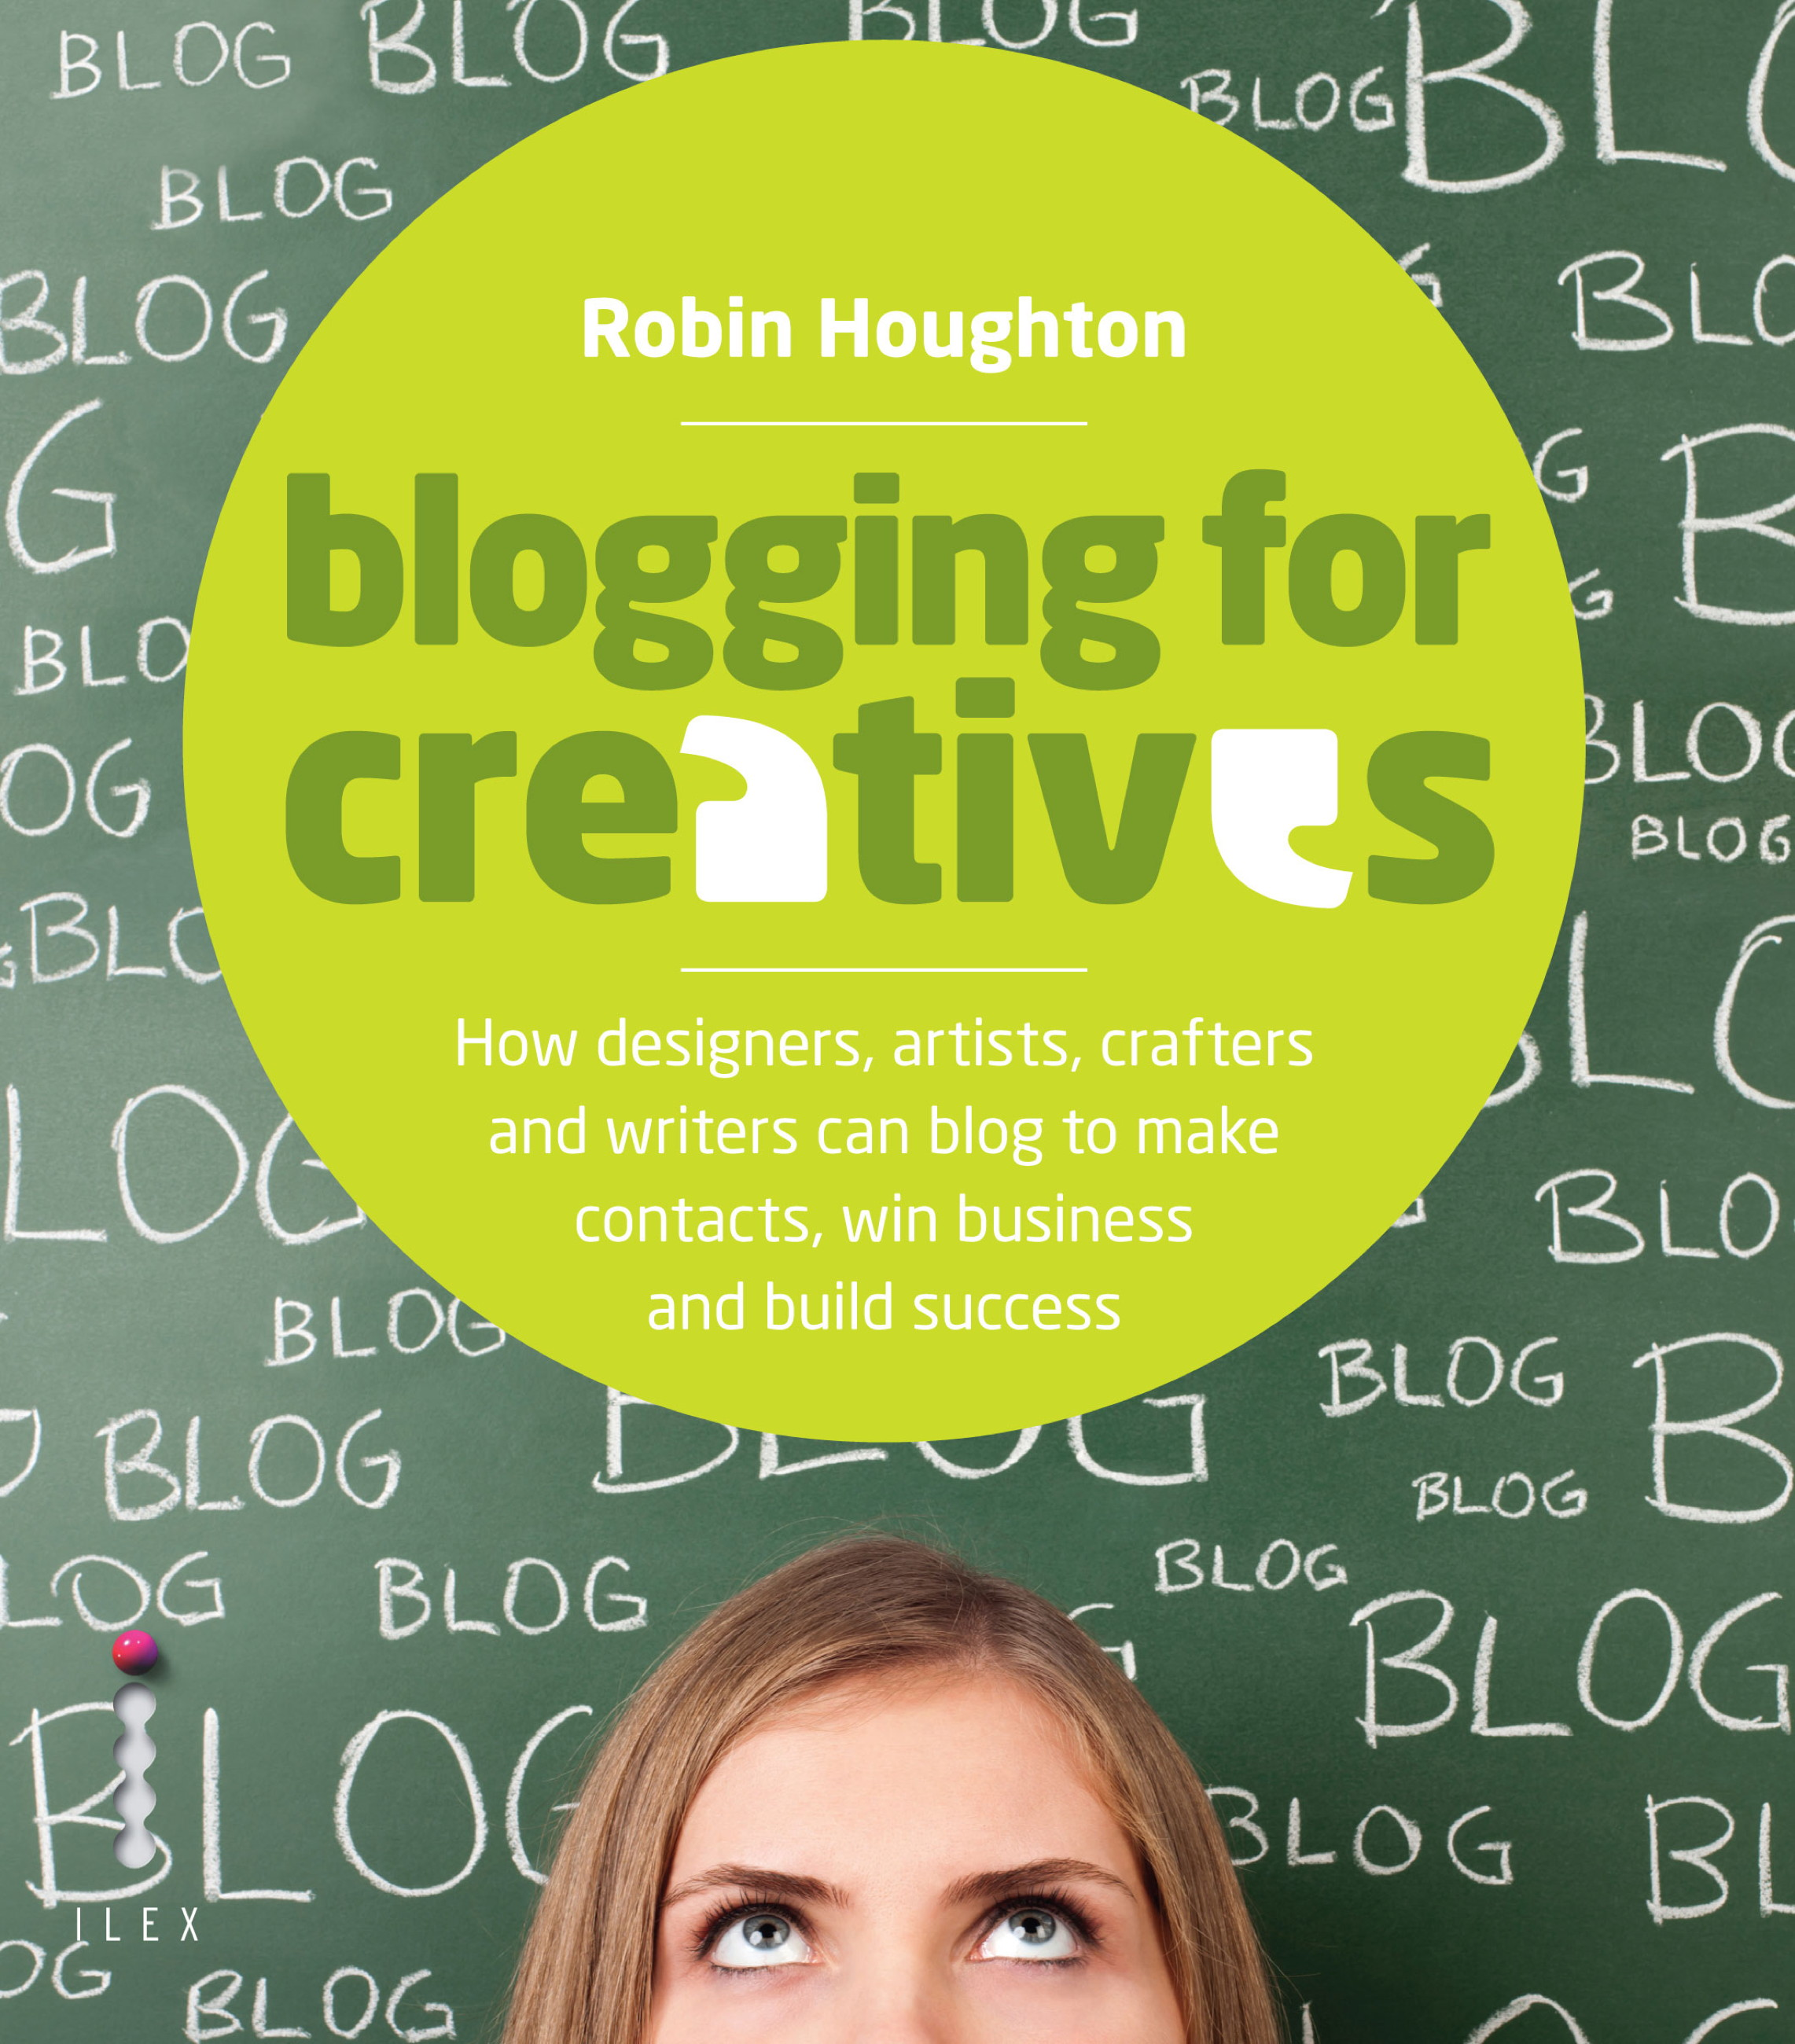 Blogging for Creatives How Deisgners,  Astists,  Crafters and Writers can Blog to Make Contacts,  Win Business and Build Success